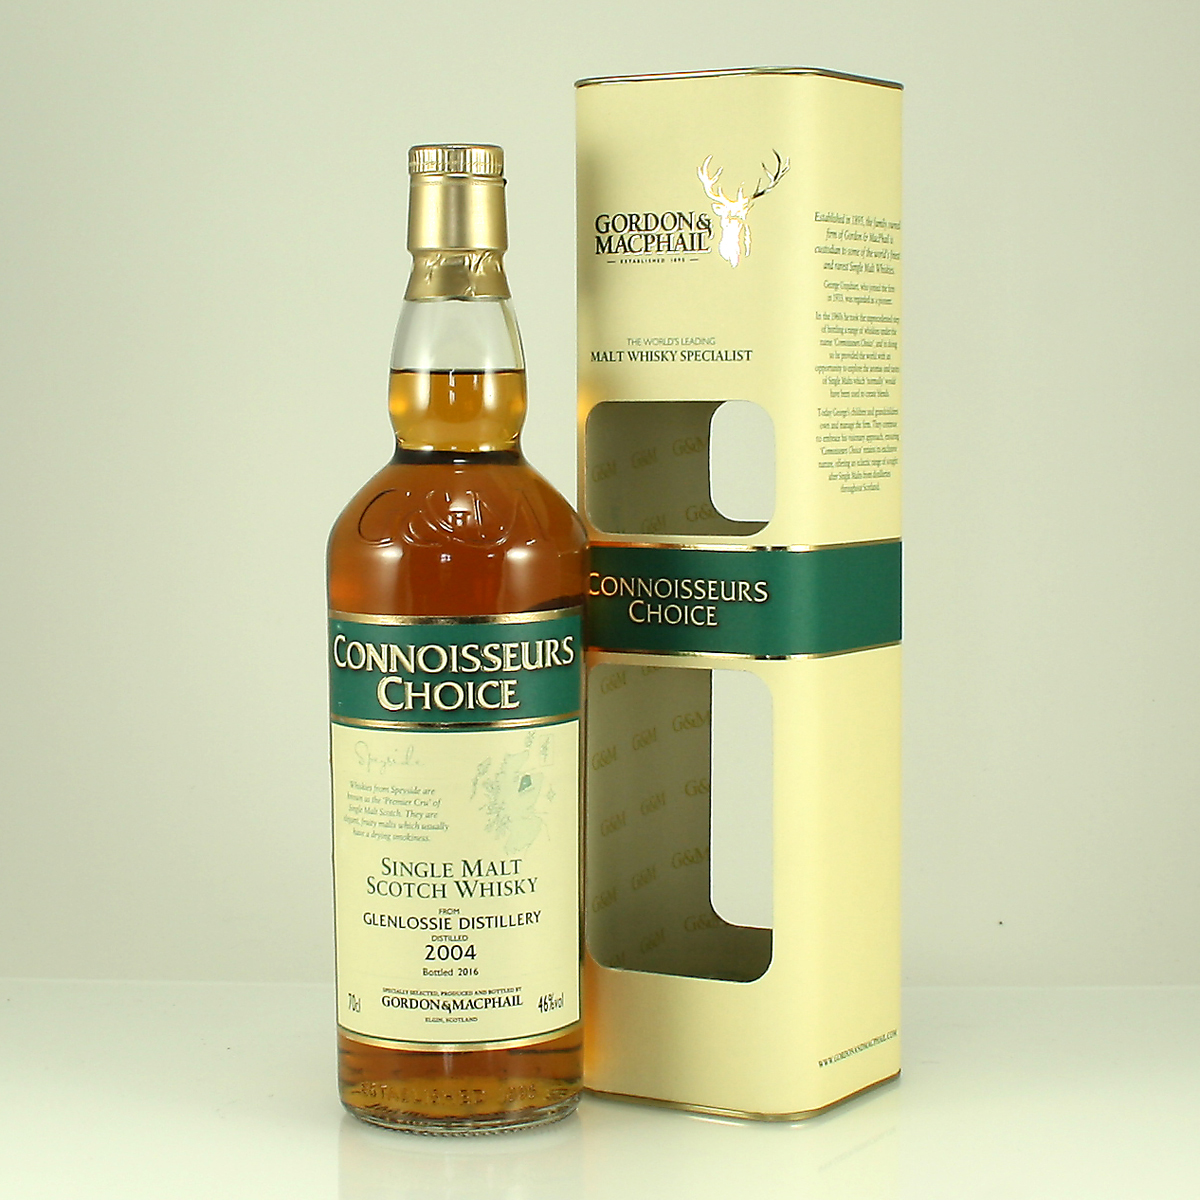 GLENLOSSIE 2004 Connoisseurs Choice 46% 70cl